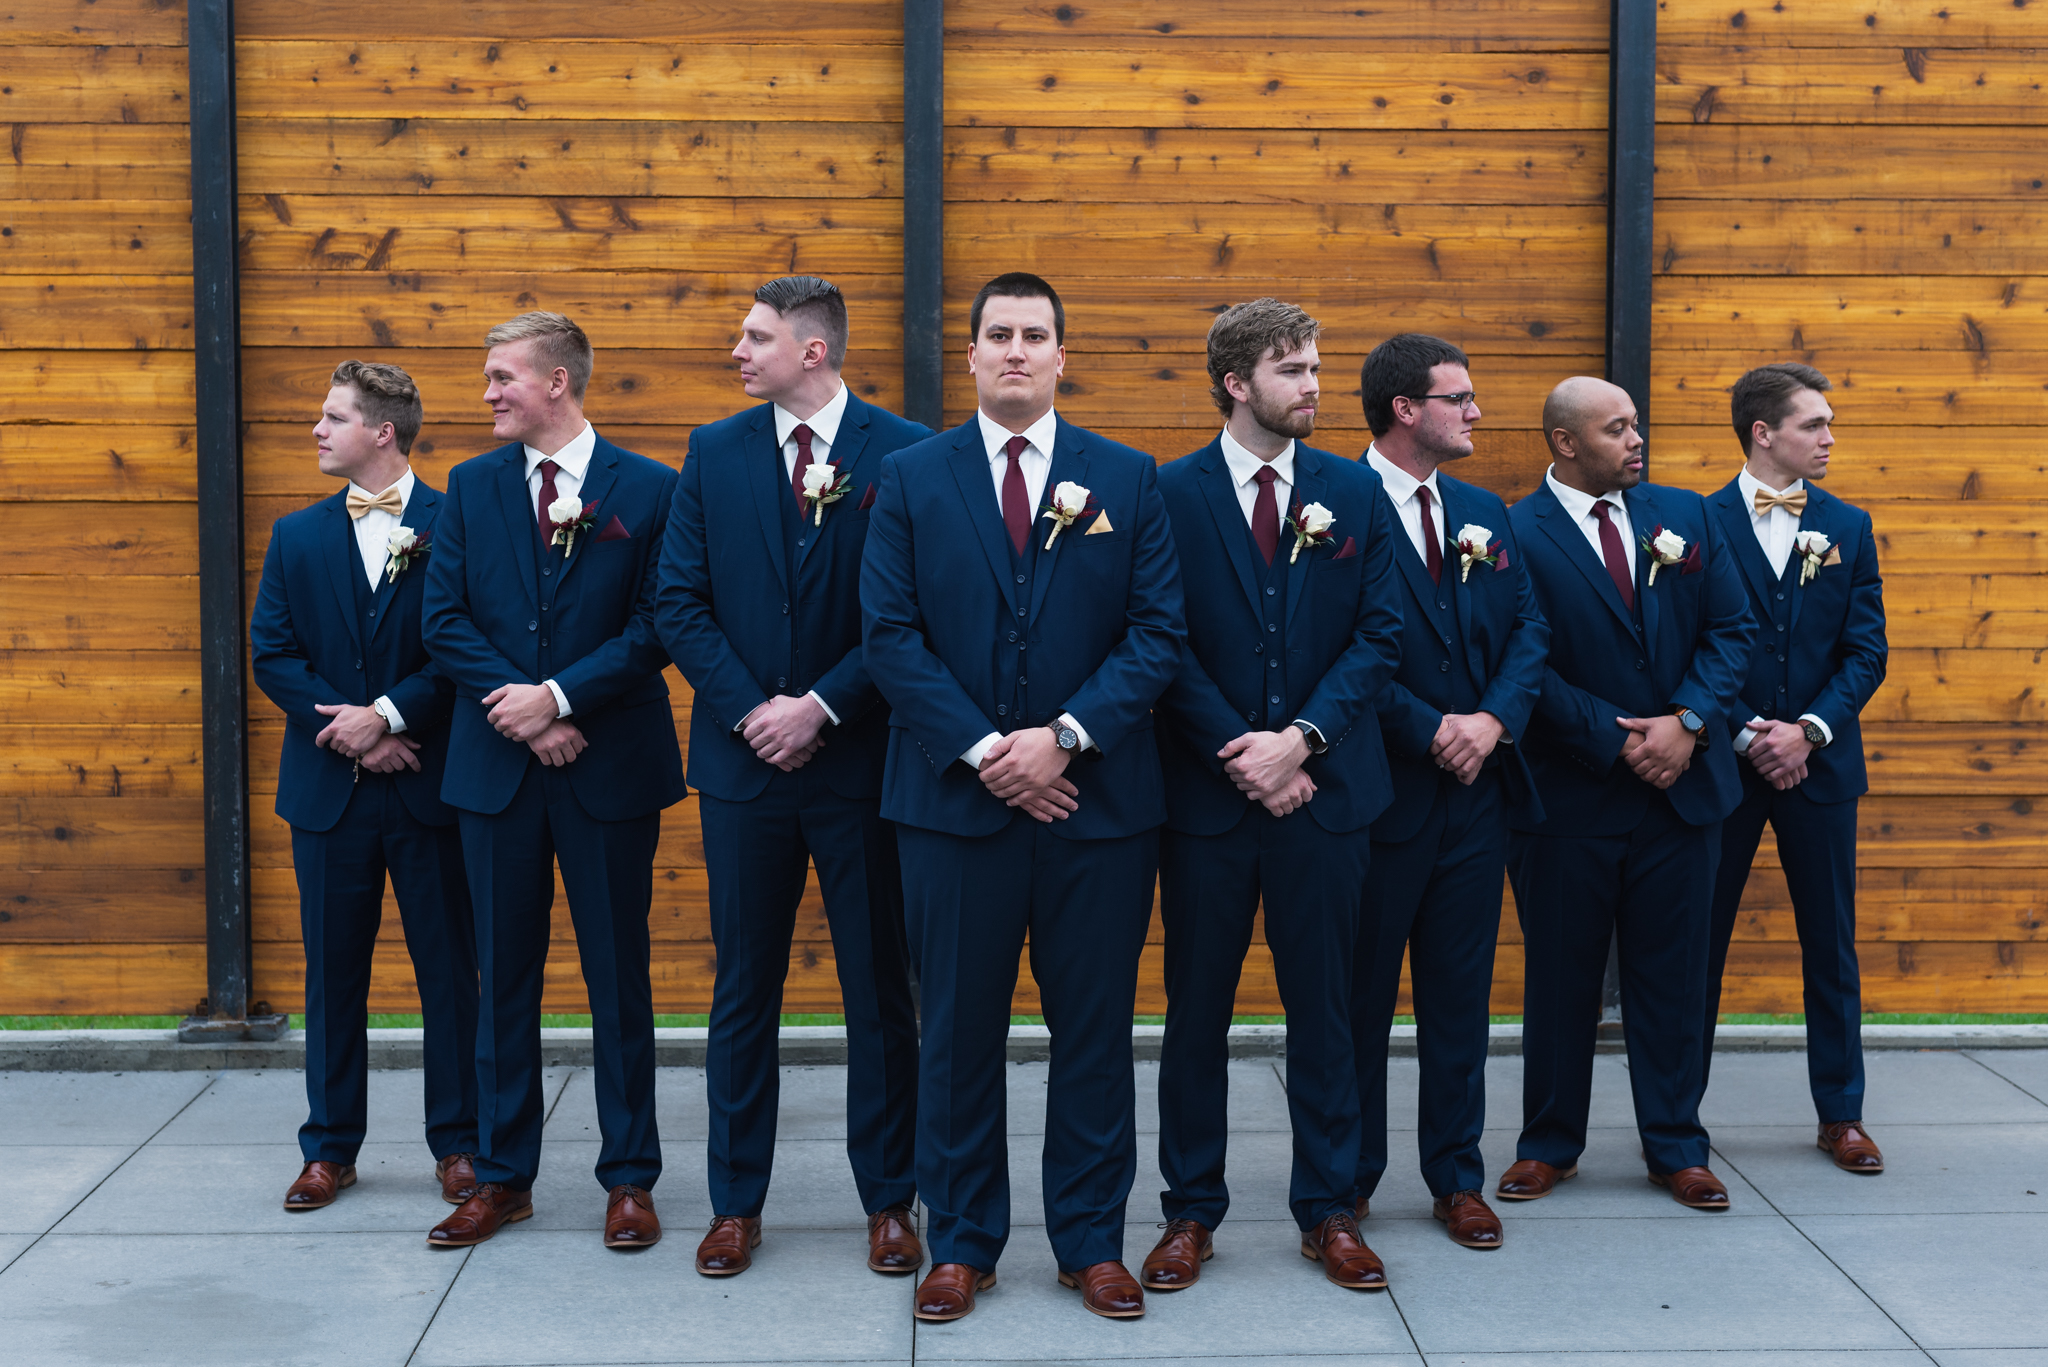 Fall Midwest Wedding | North Dakota Wedding Photography by Chelsea Joy Photography